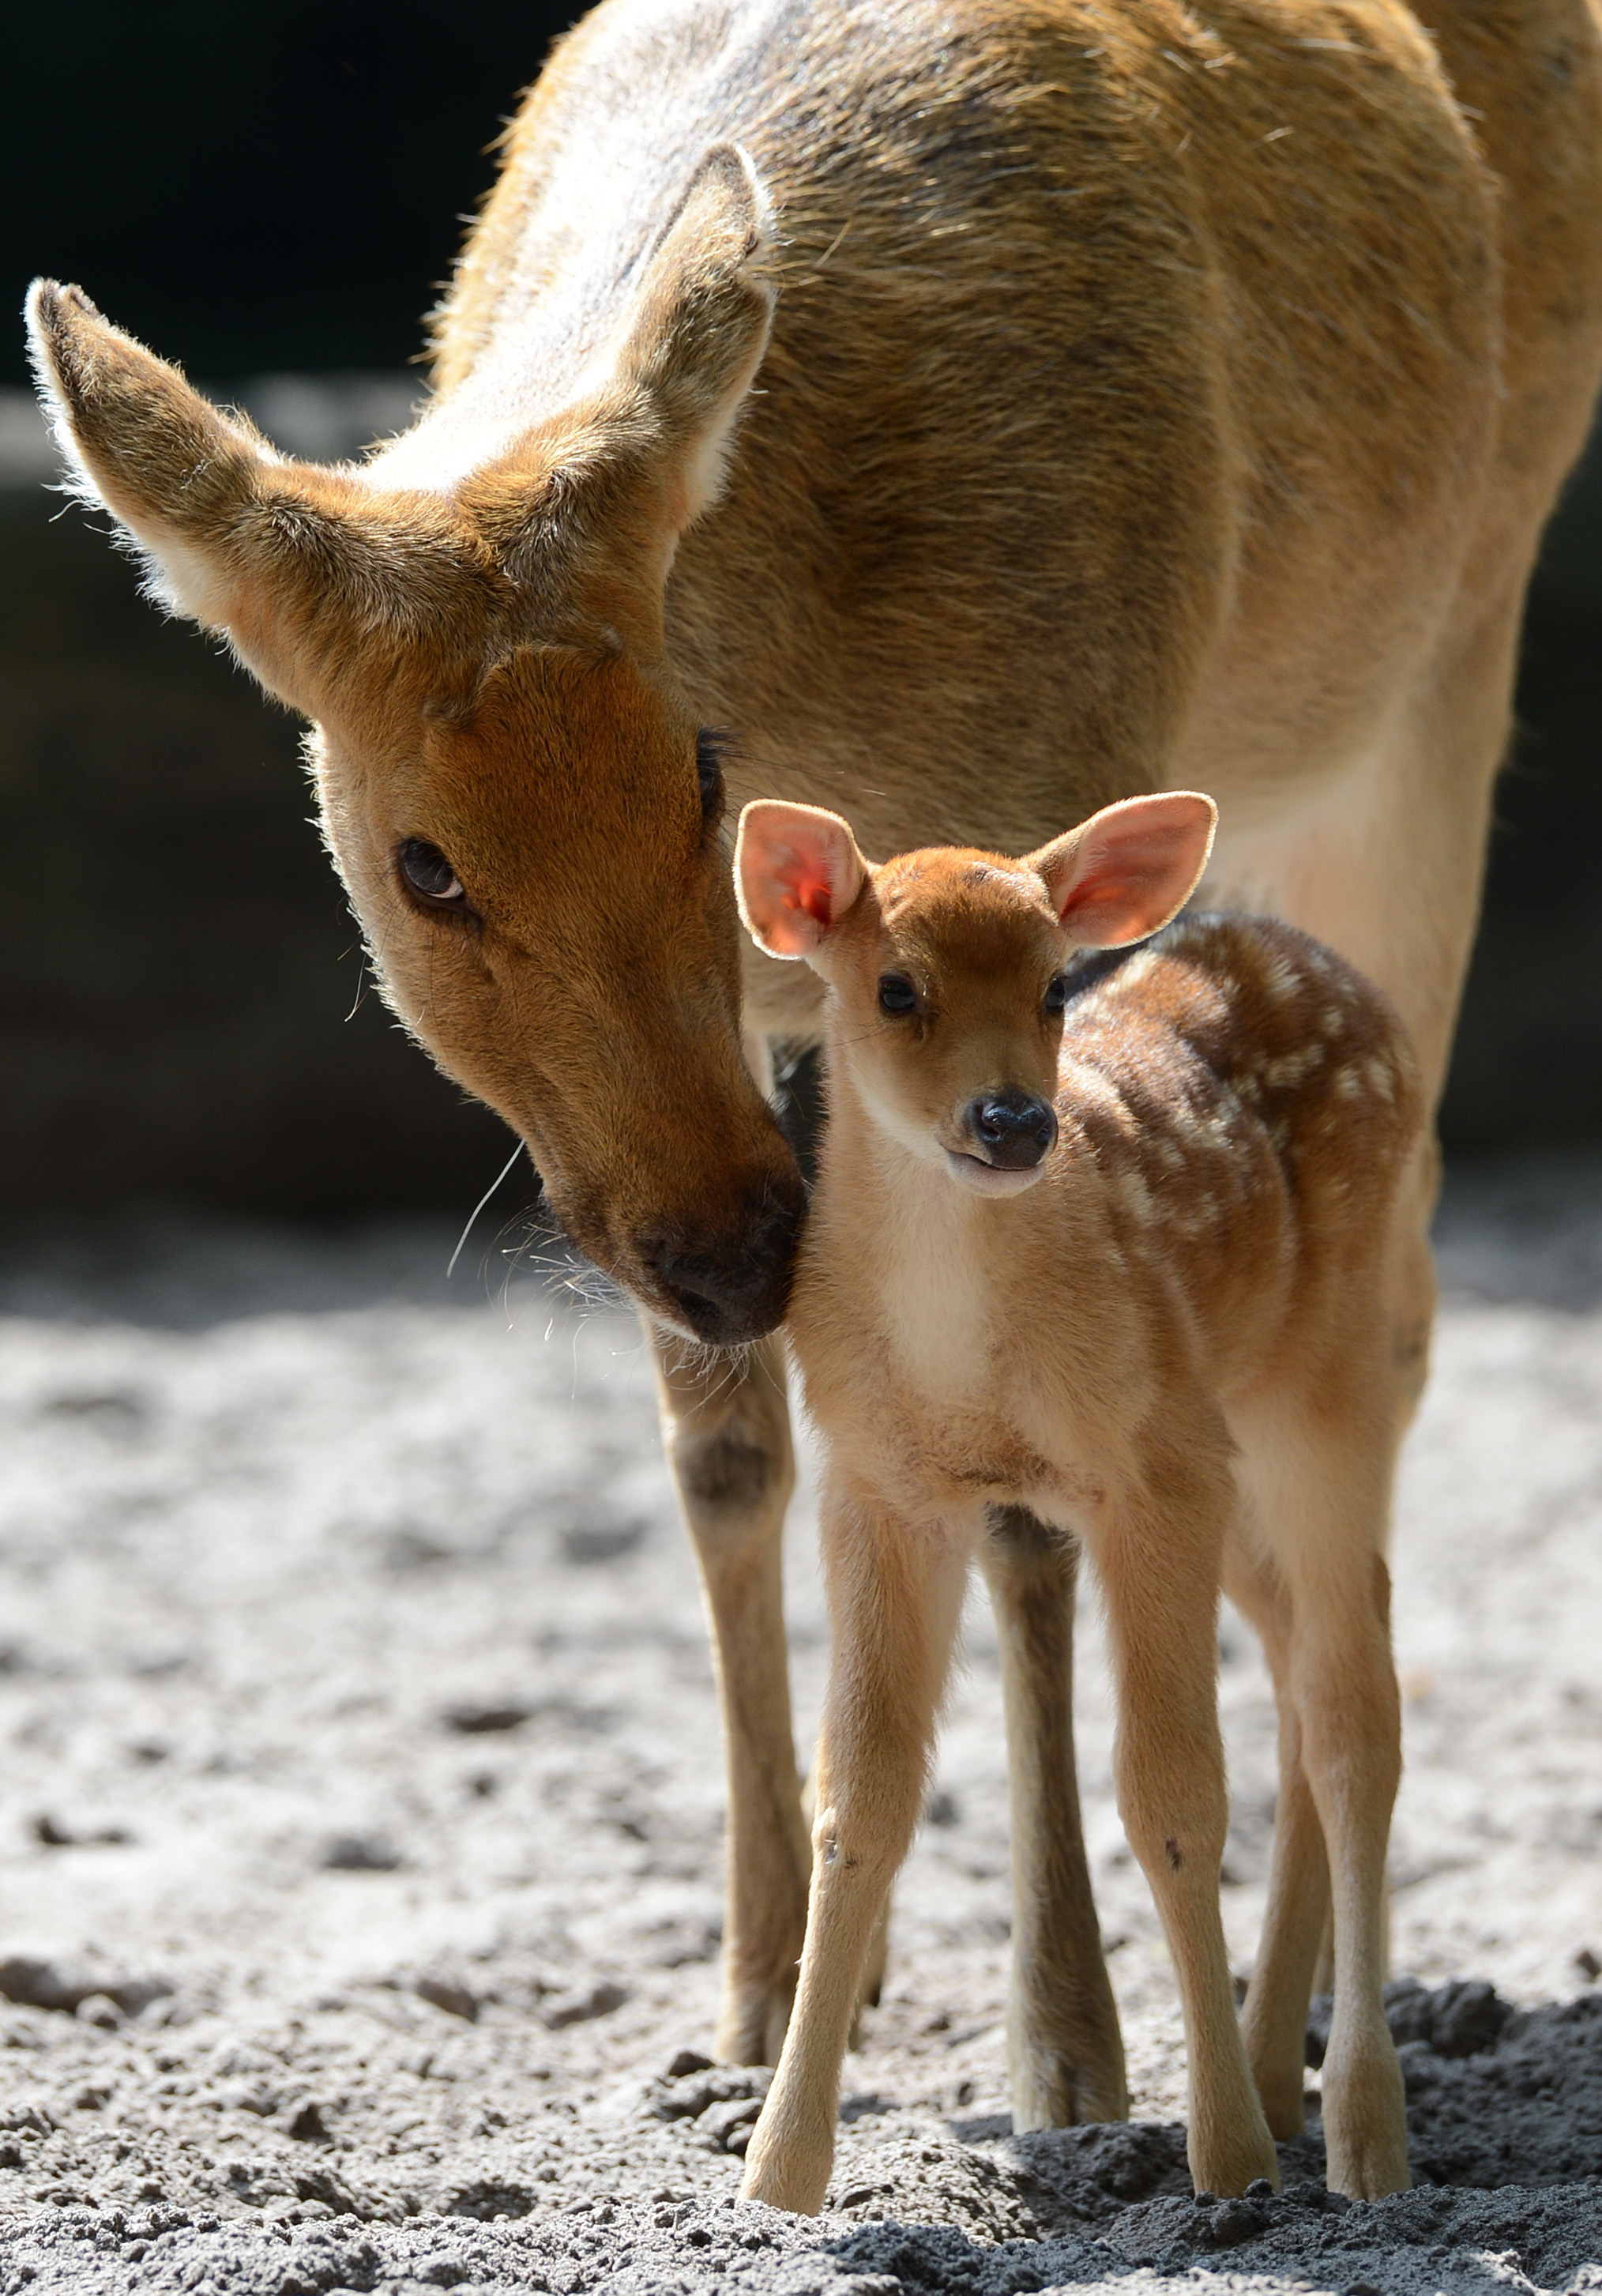 A young Barasingha deer gets his name from the 12 prongs ...